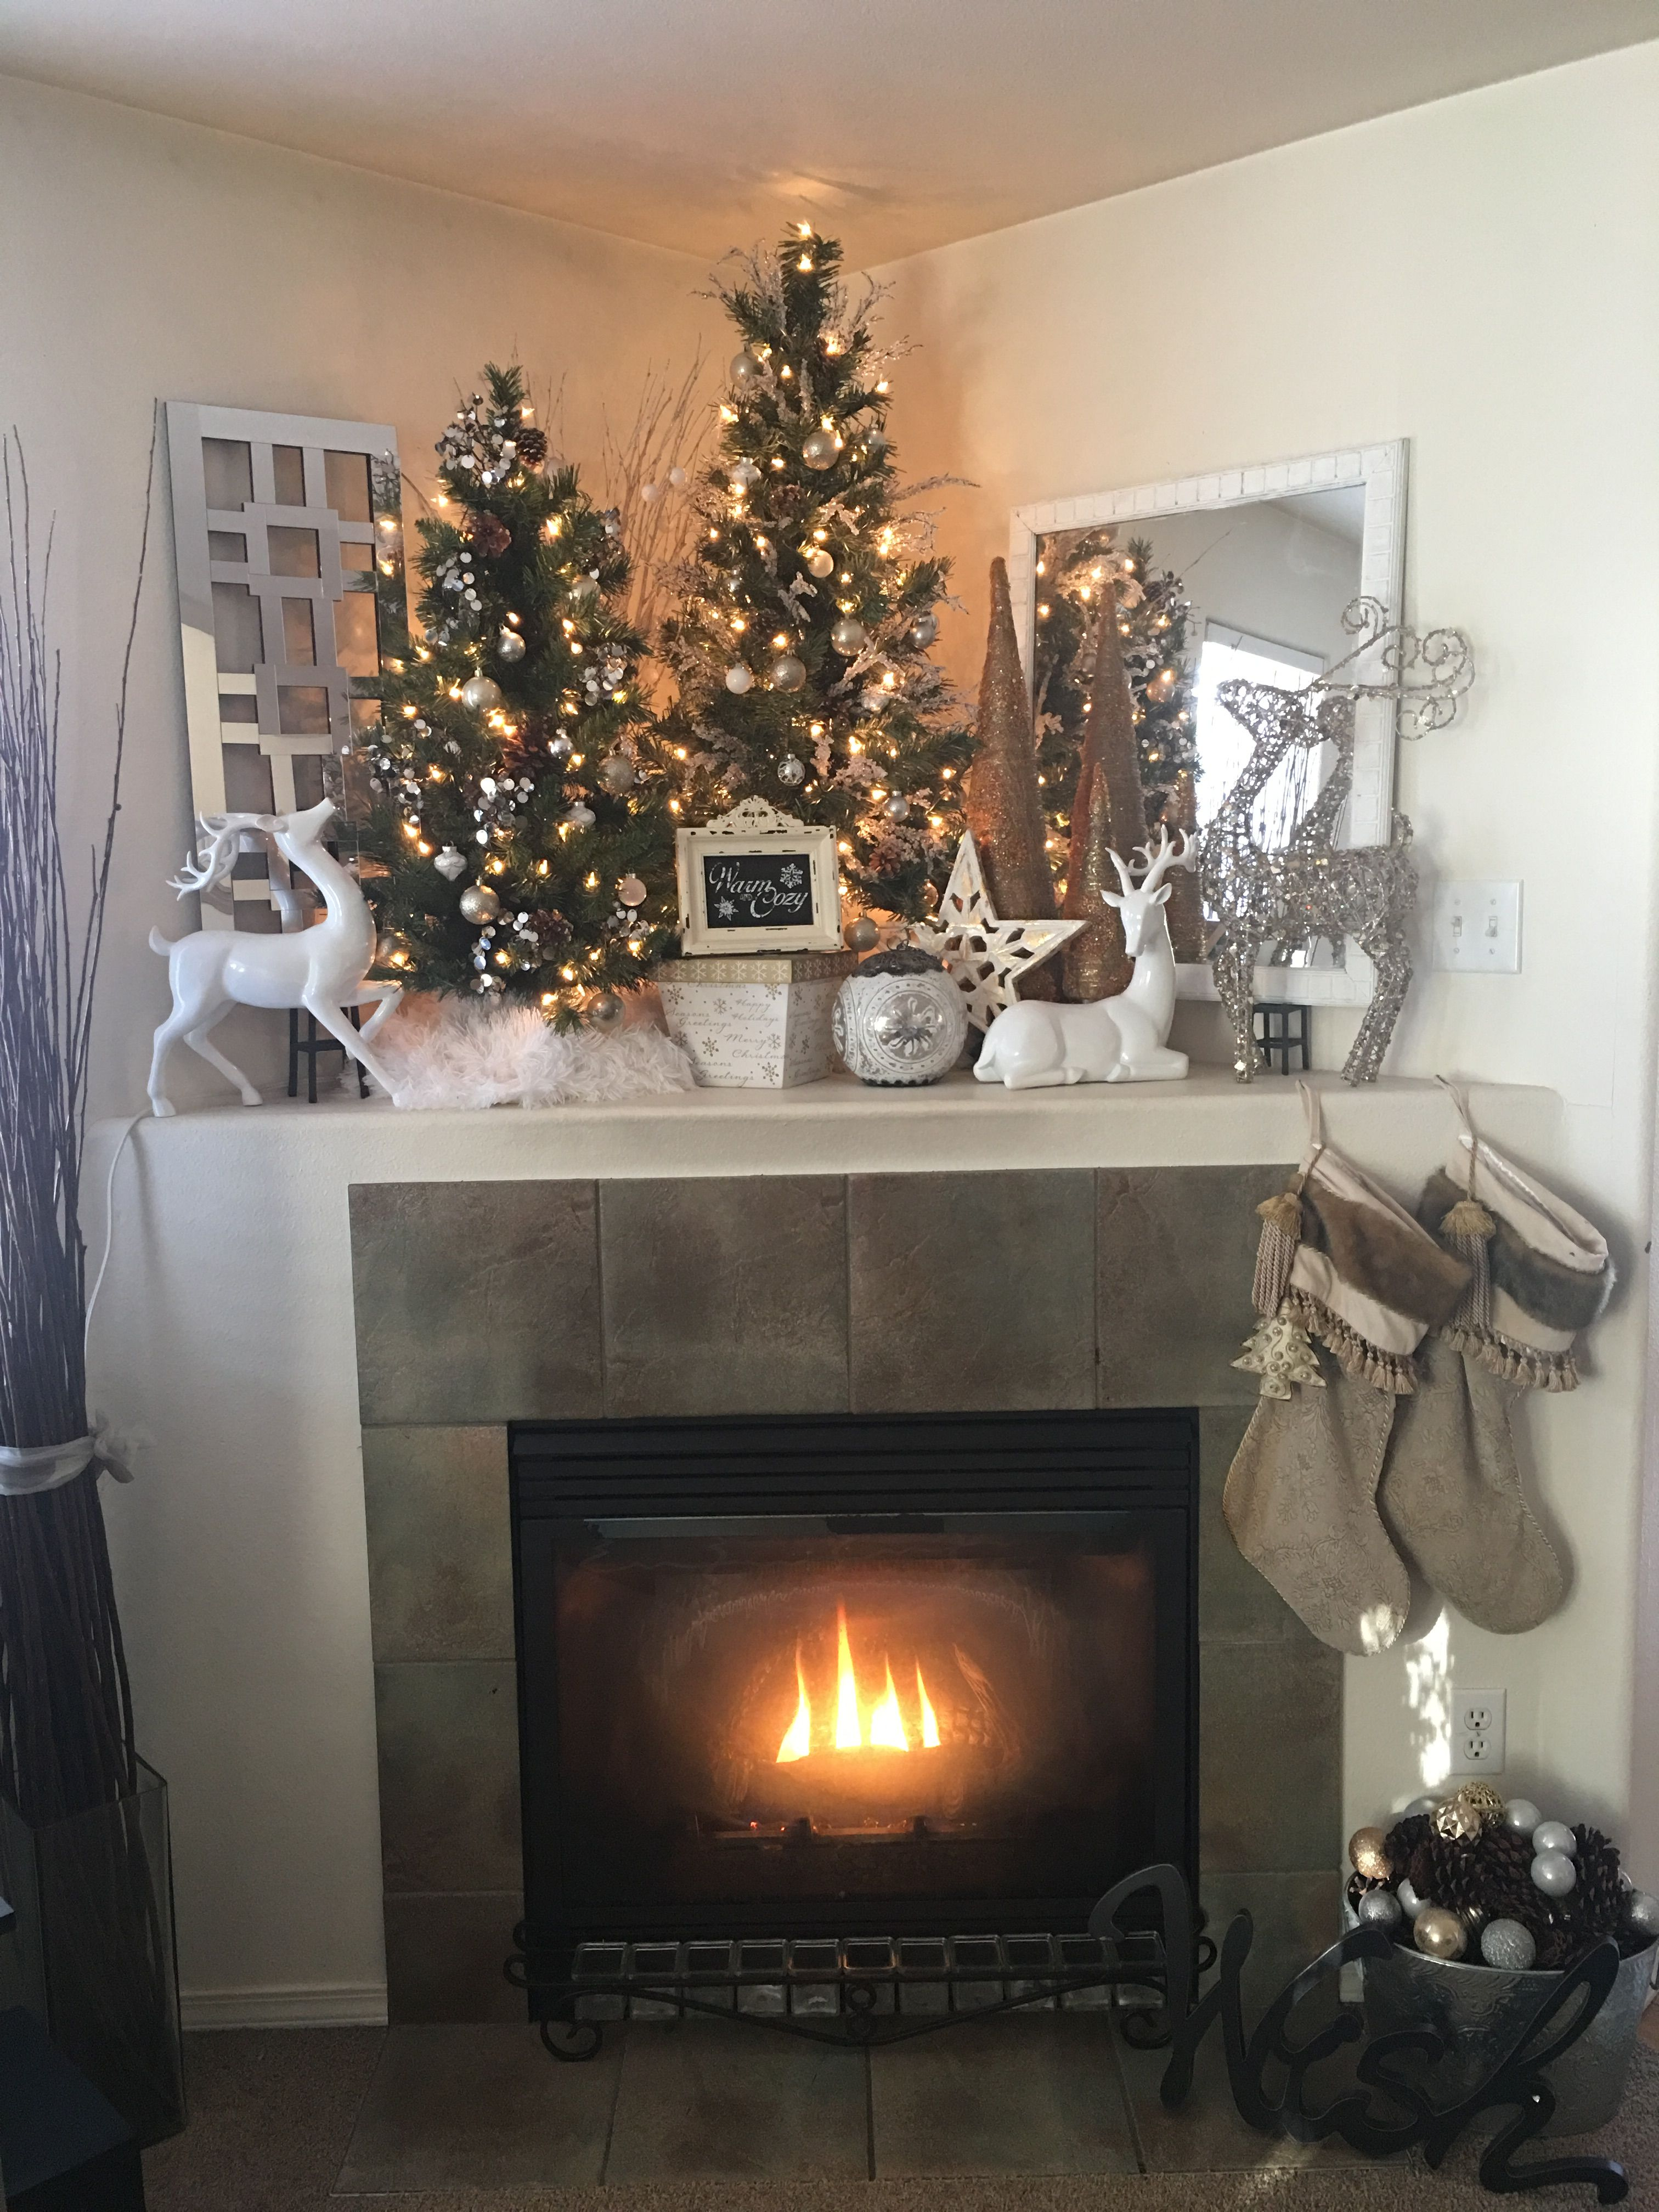 Warm And Cozy Corner Mantle Christmas Decor Reindeer White Silver Gold Christmas Fireplace Decor Christmas Mantle Decor Corner Fireplace Decor